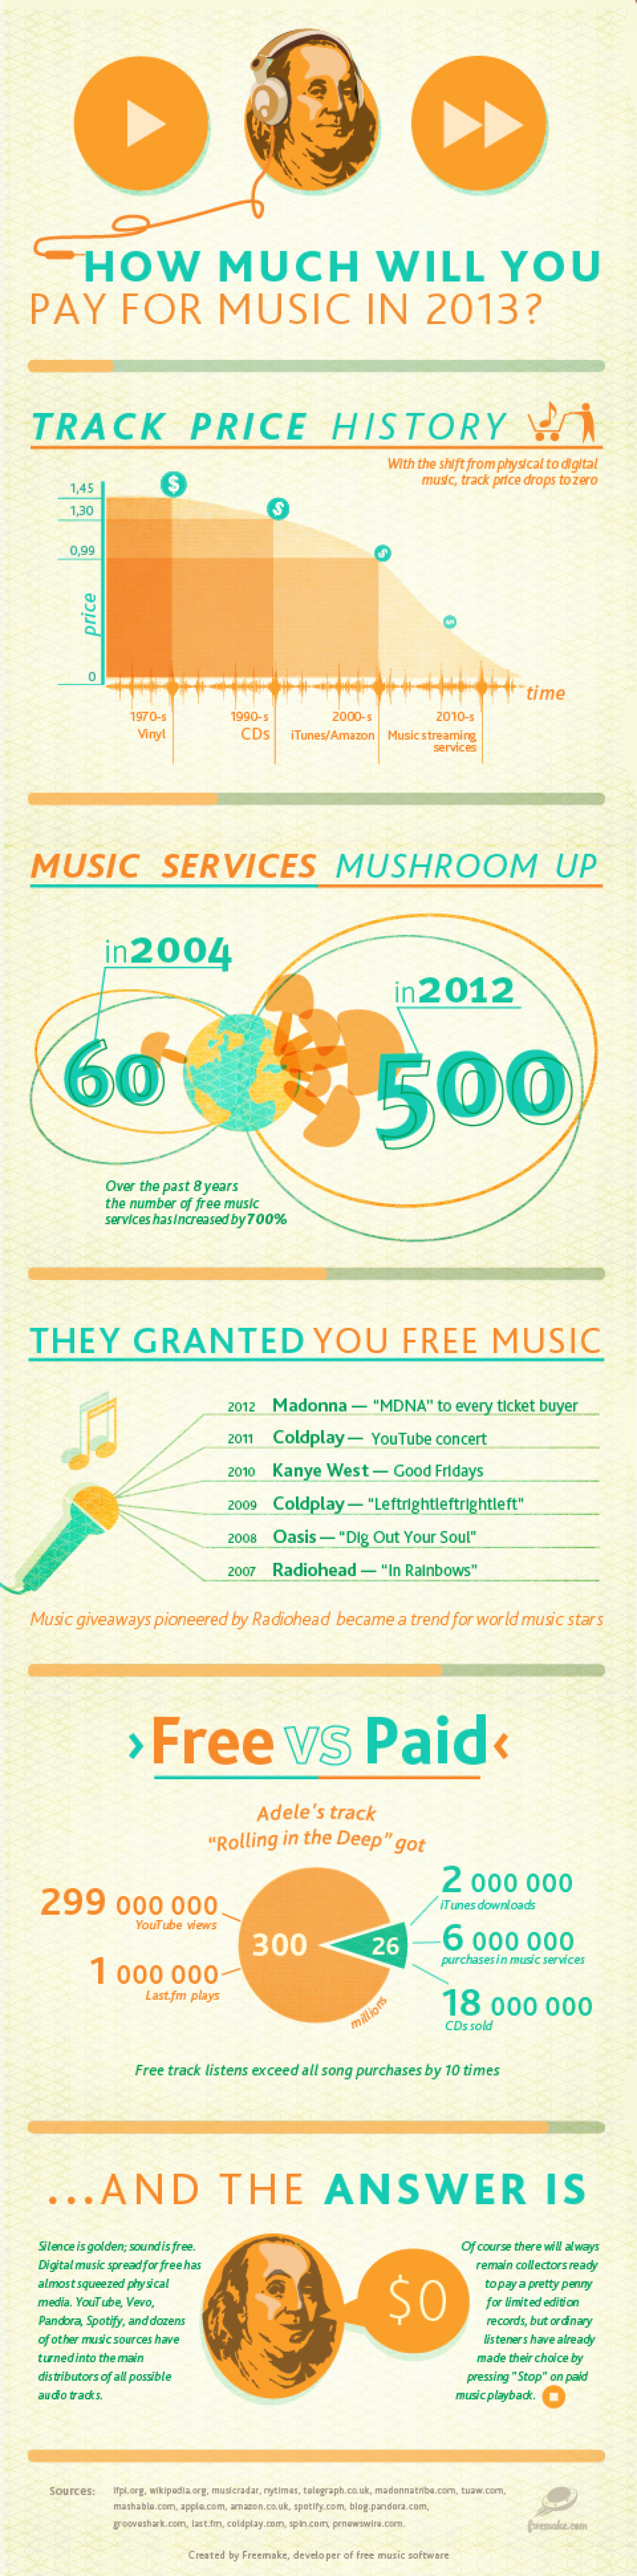 How Much Will You Pay for Music in 2013  [INFOGRAPHIC] Infographic